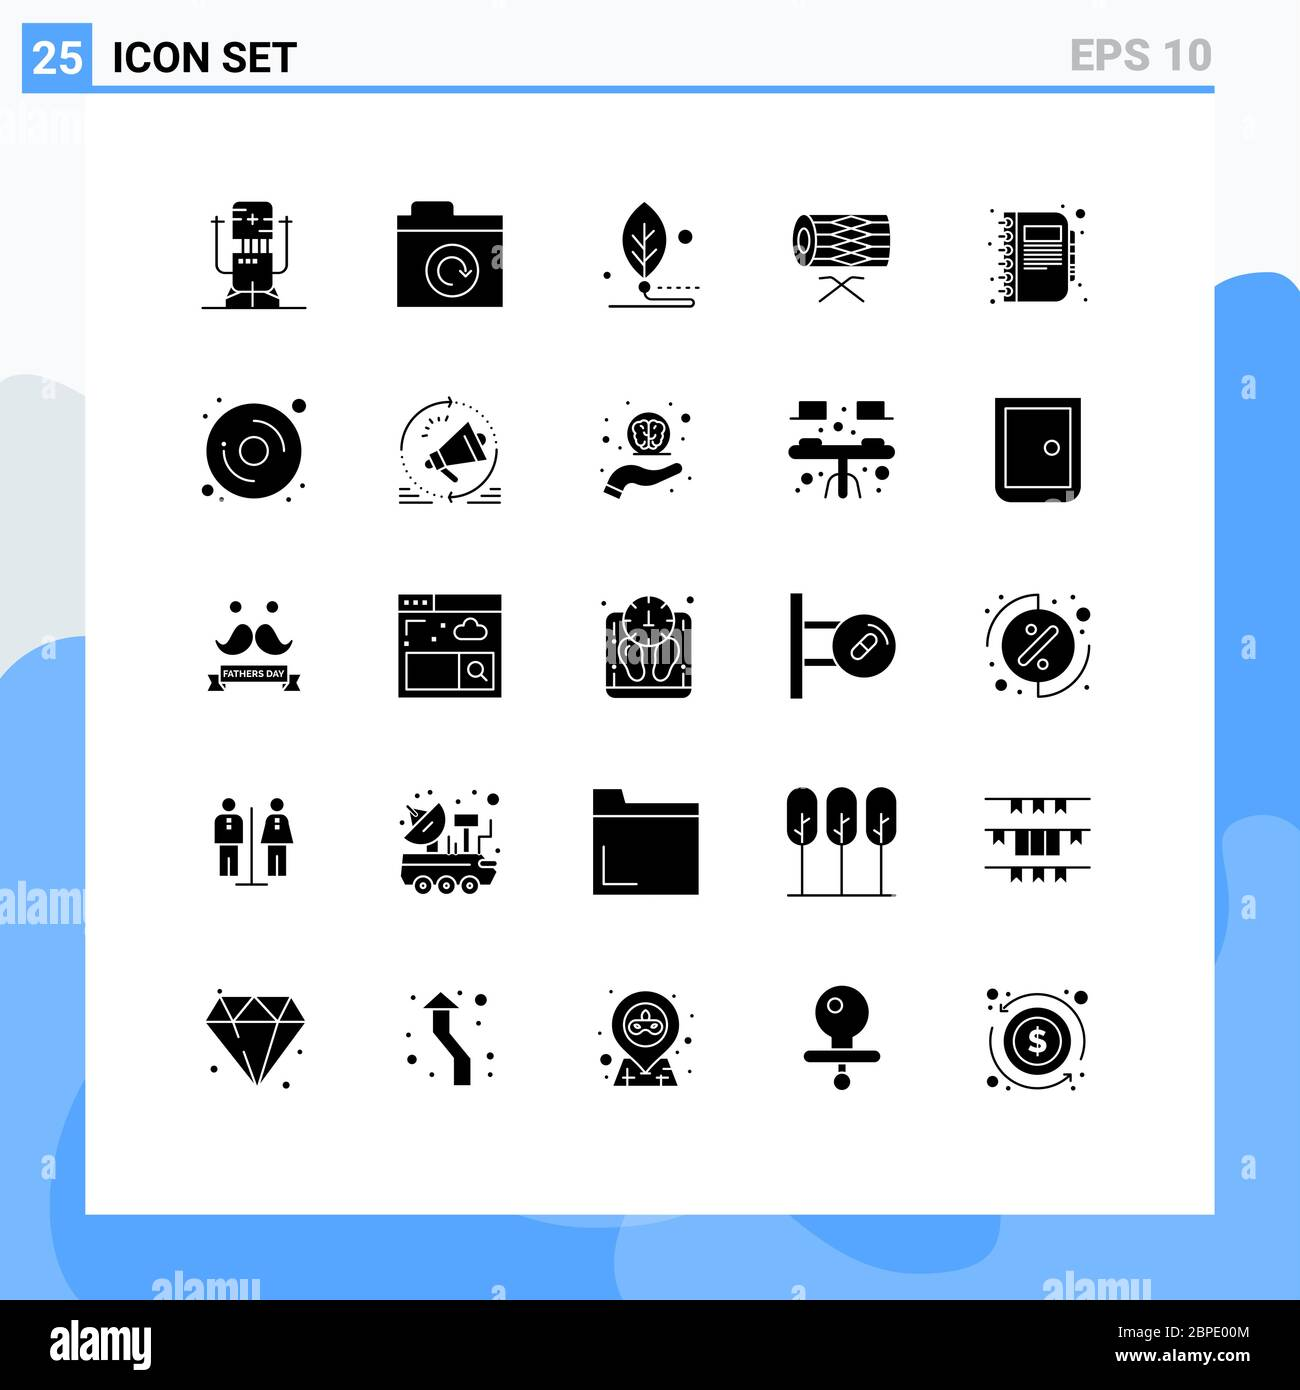 25 User Interface Solid Glyph Pack of modern Signs and Symbols of st, irish, artificial, instrument, life Editable Vector Design Elements Stock Vector